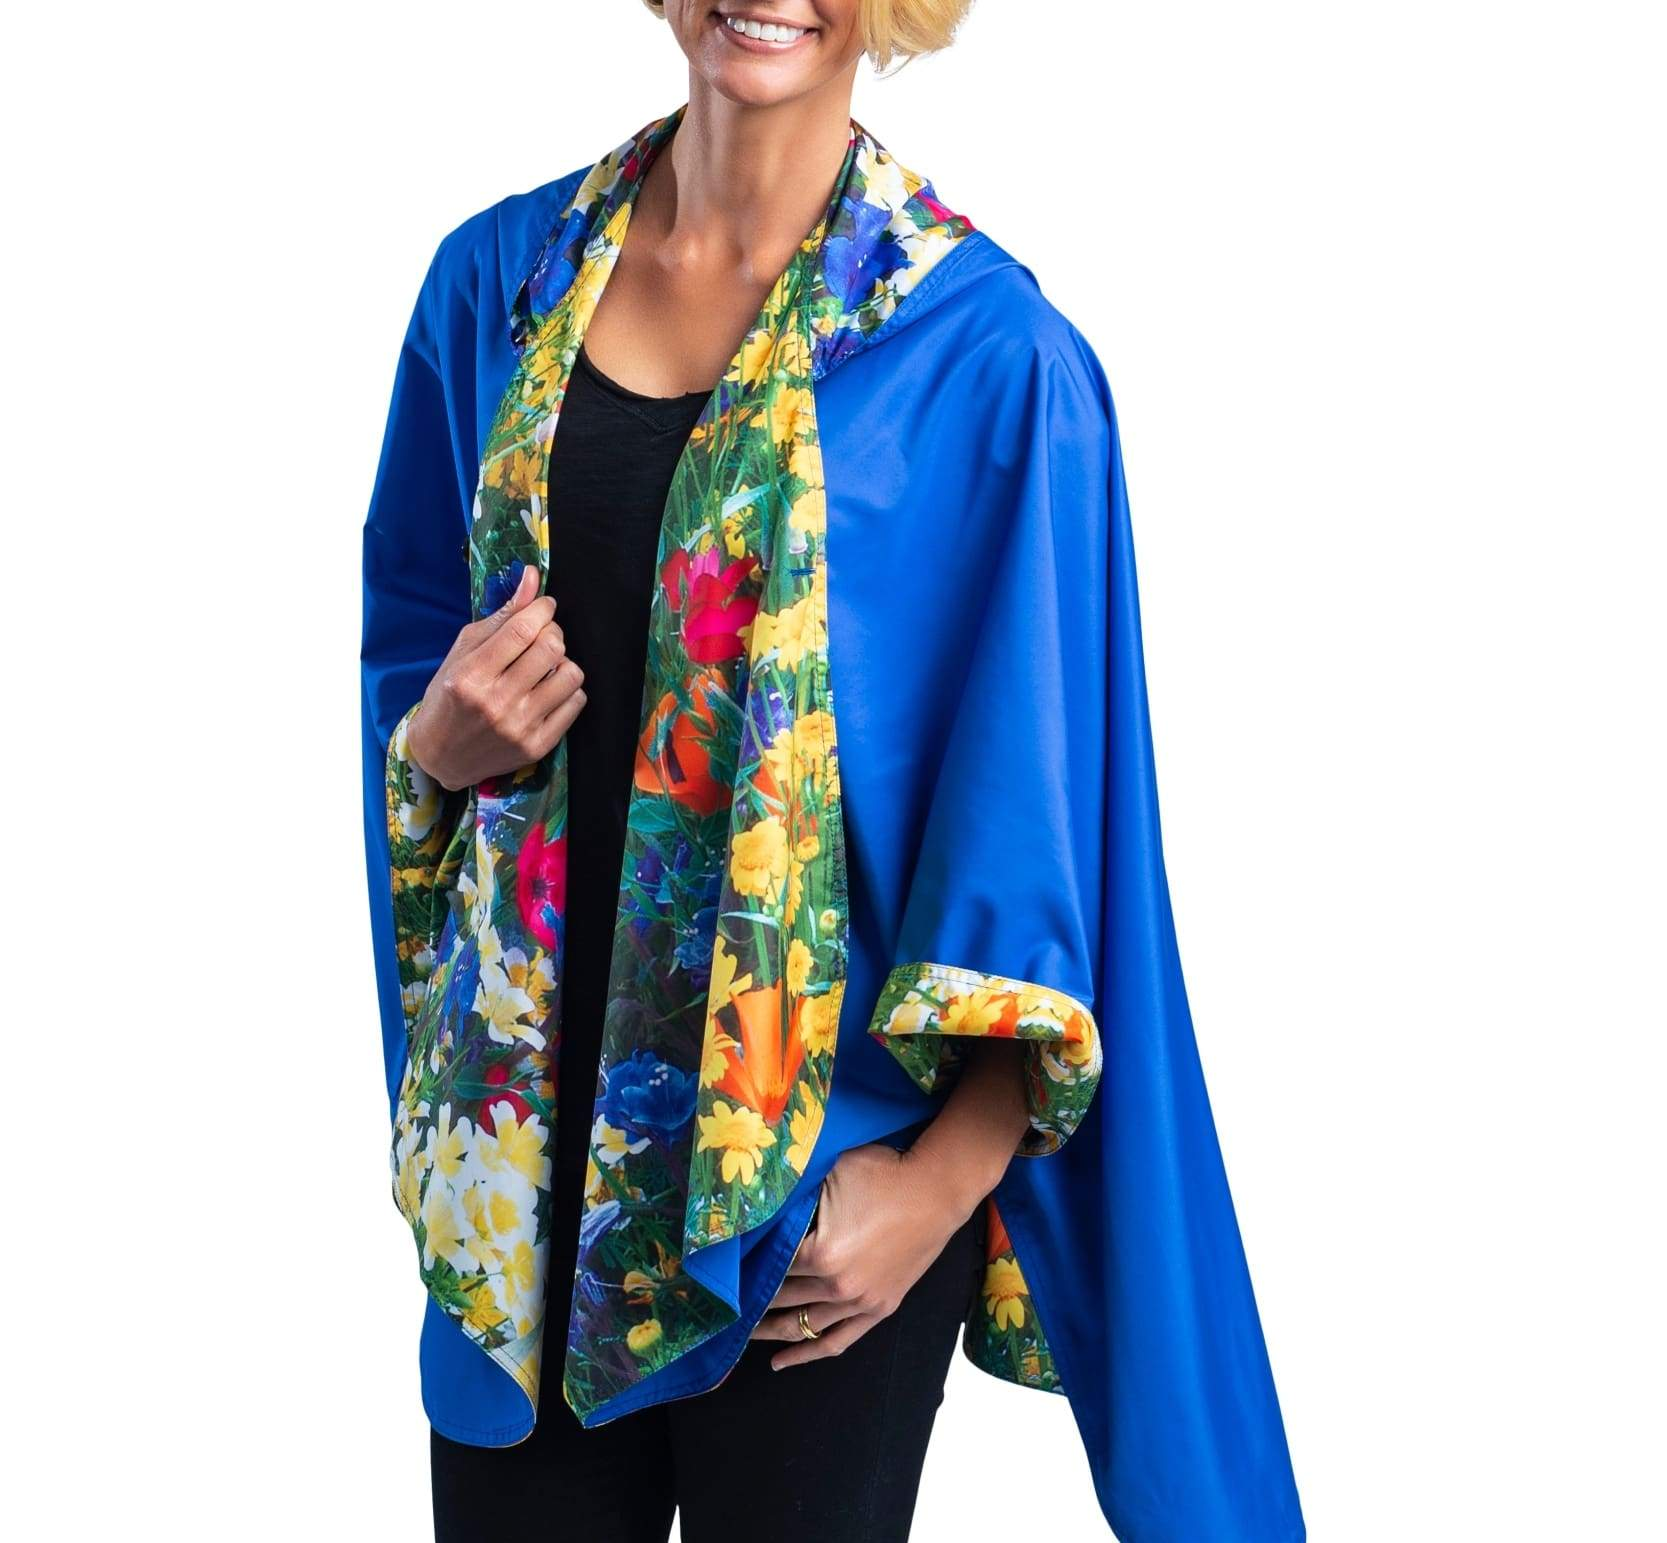 RainCaper Royal with Blue & Yellow Wildflowers Travel Cape